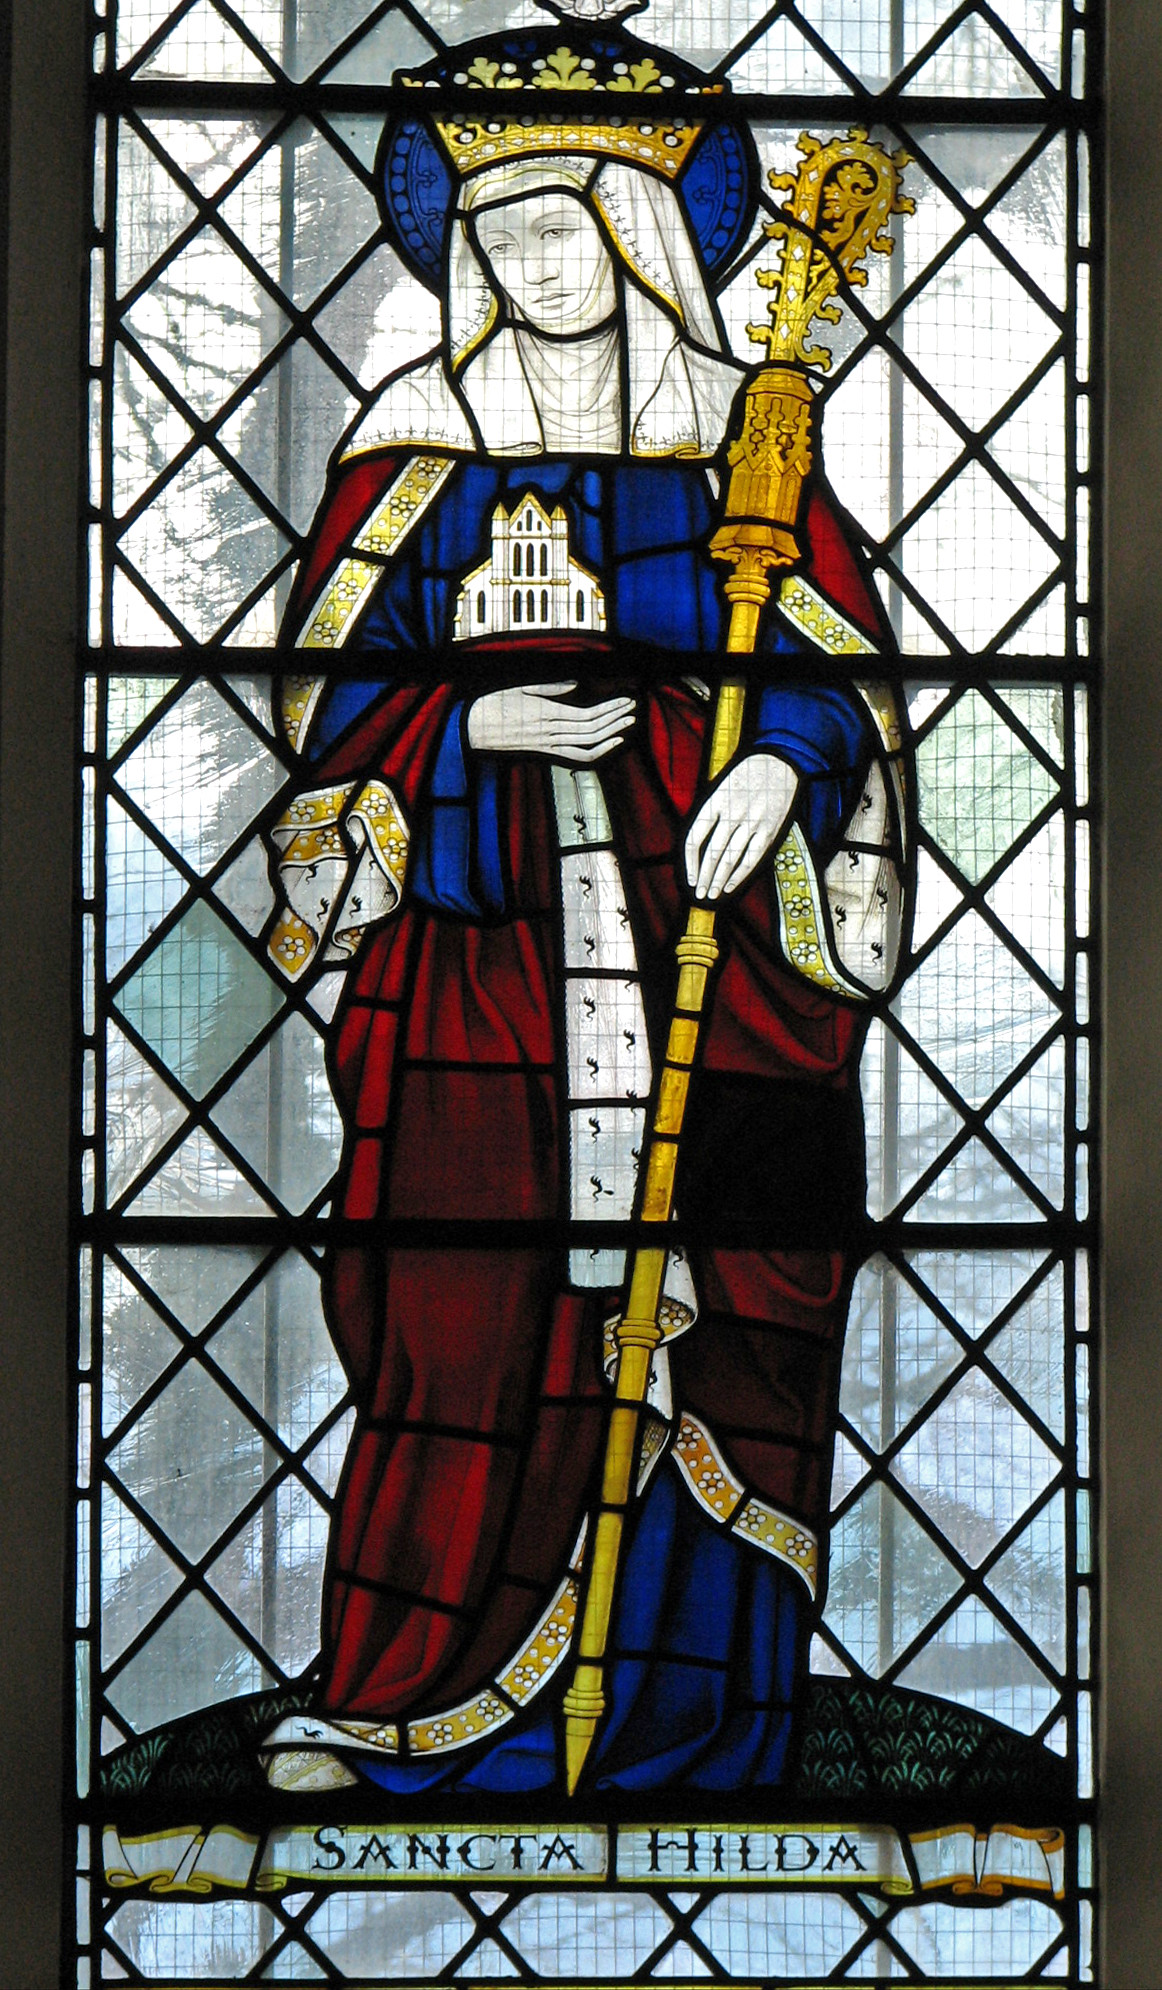 St Hilda of Whitby